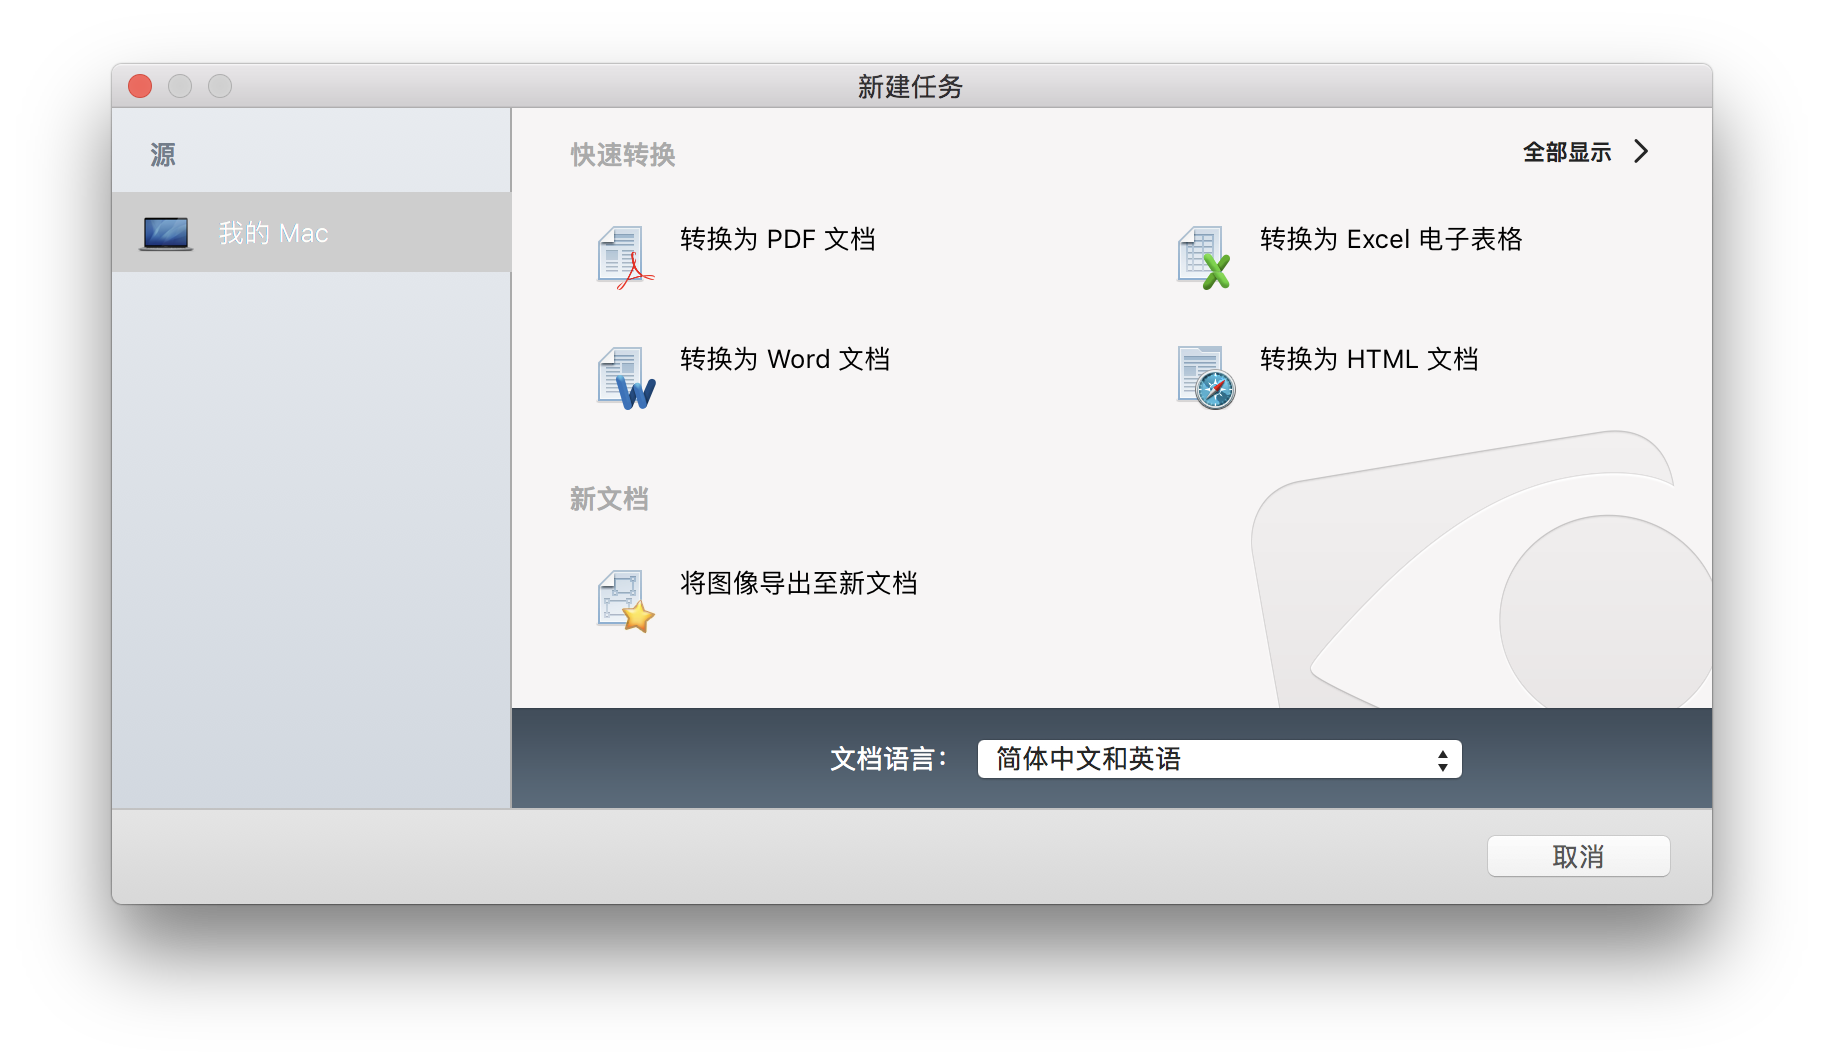 Abbyy Finereader Ocr Pro For Mac abbyy finereader ocr pro 12.1.10 for mac 破解版– 最强图片